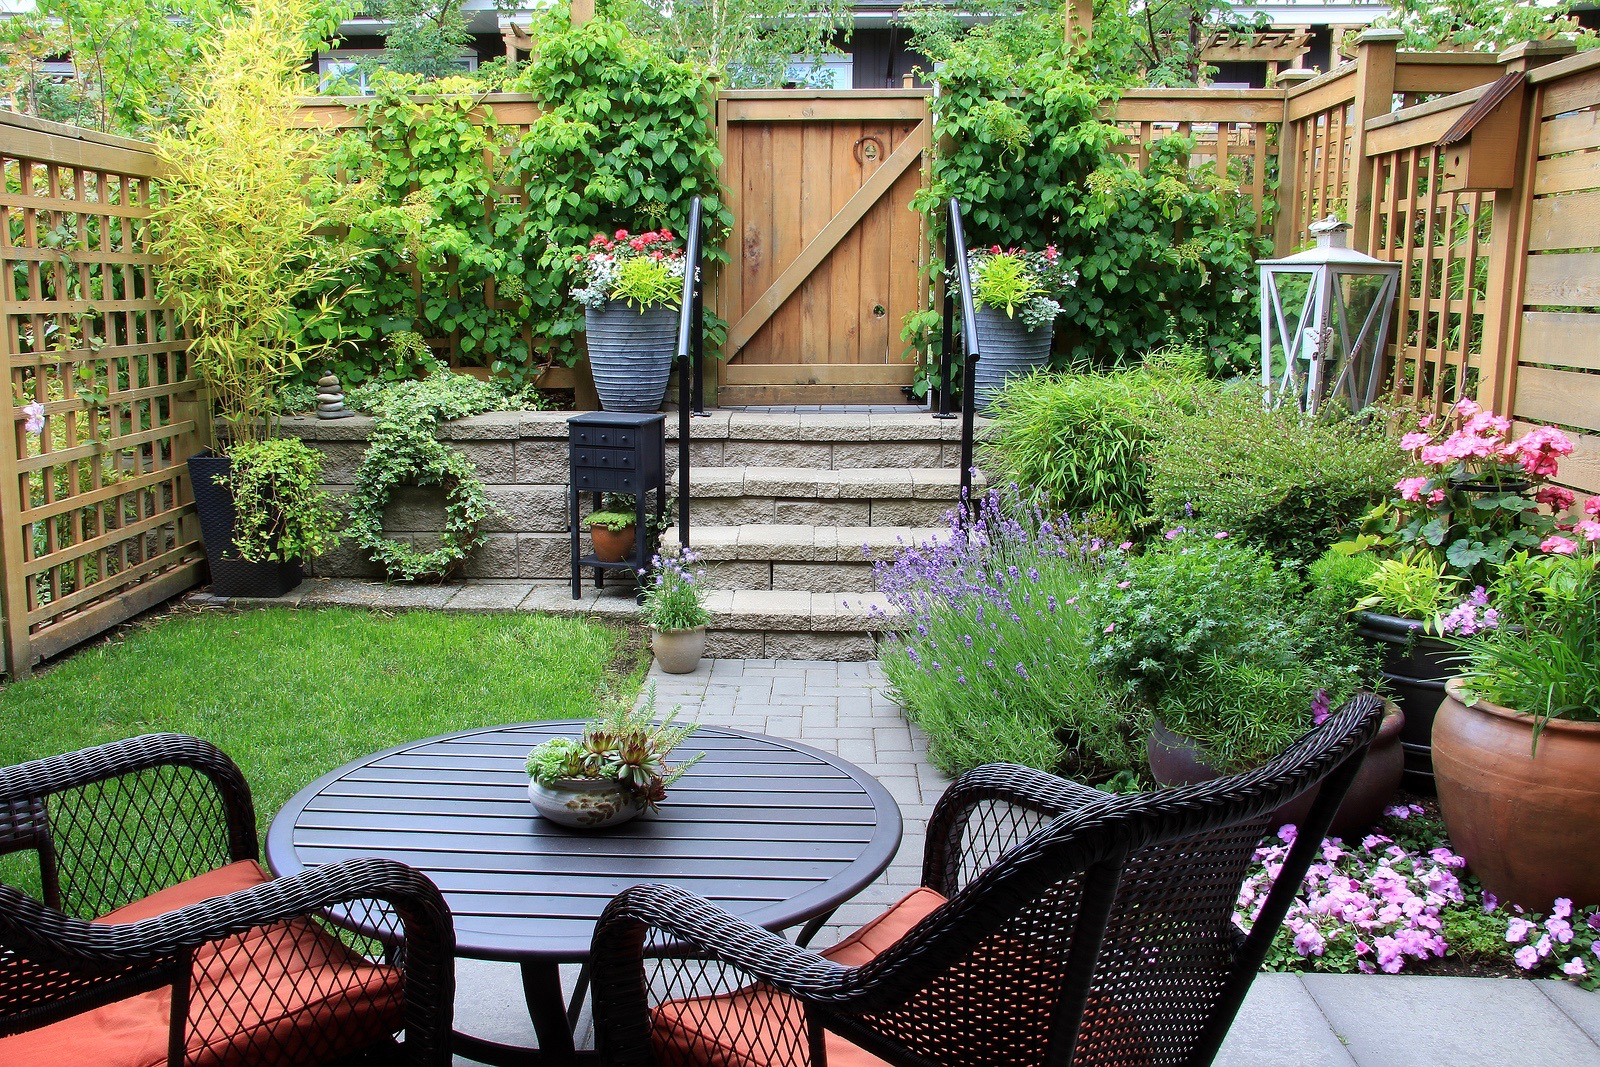 With summer right around the corner make sure you have a great outdoor patio to enjoy.